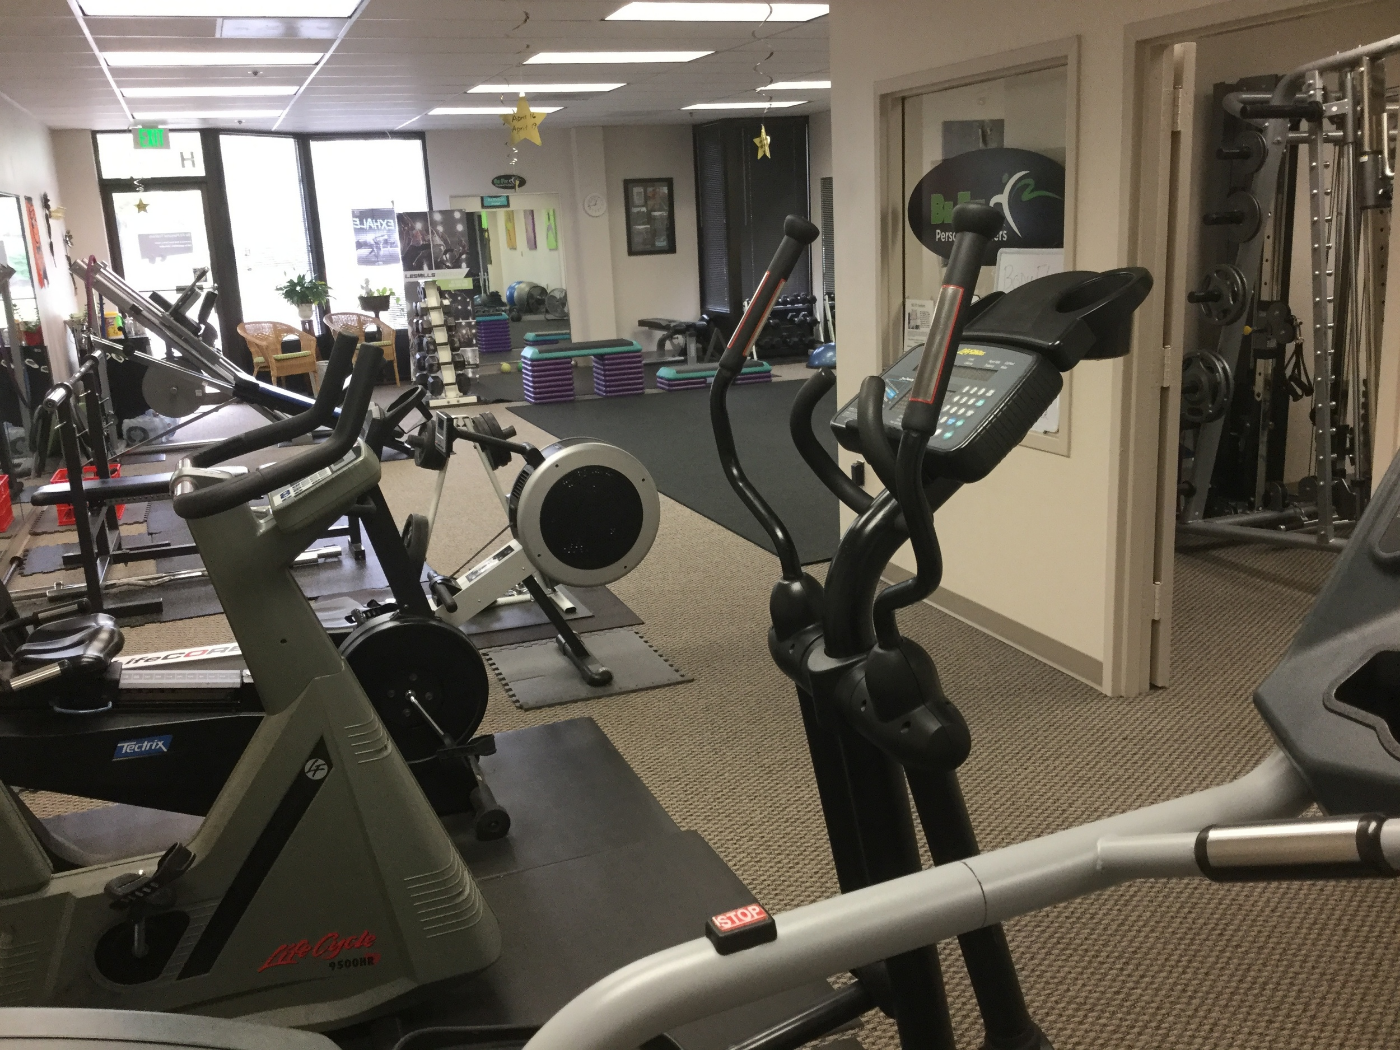 Be Fit Personal Trainers cardio location